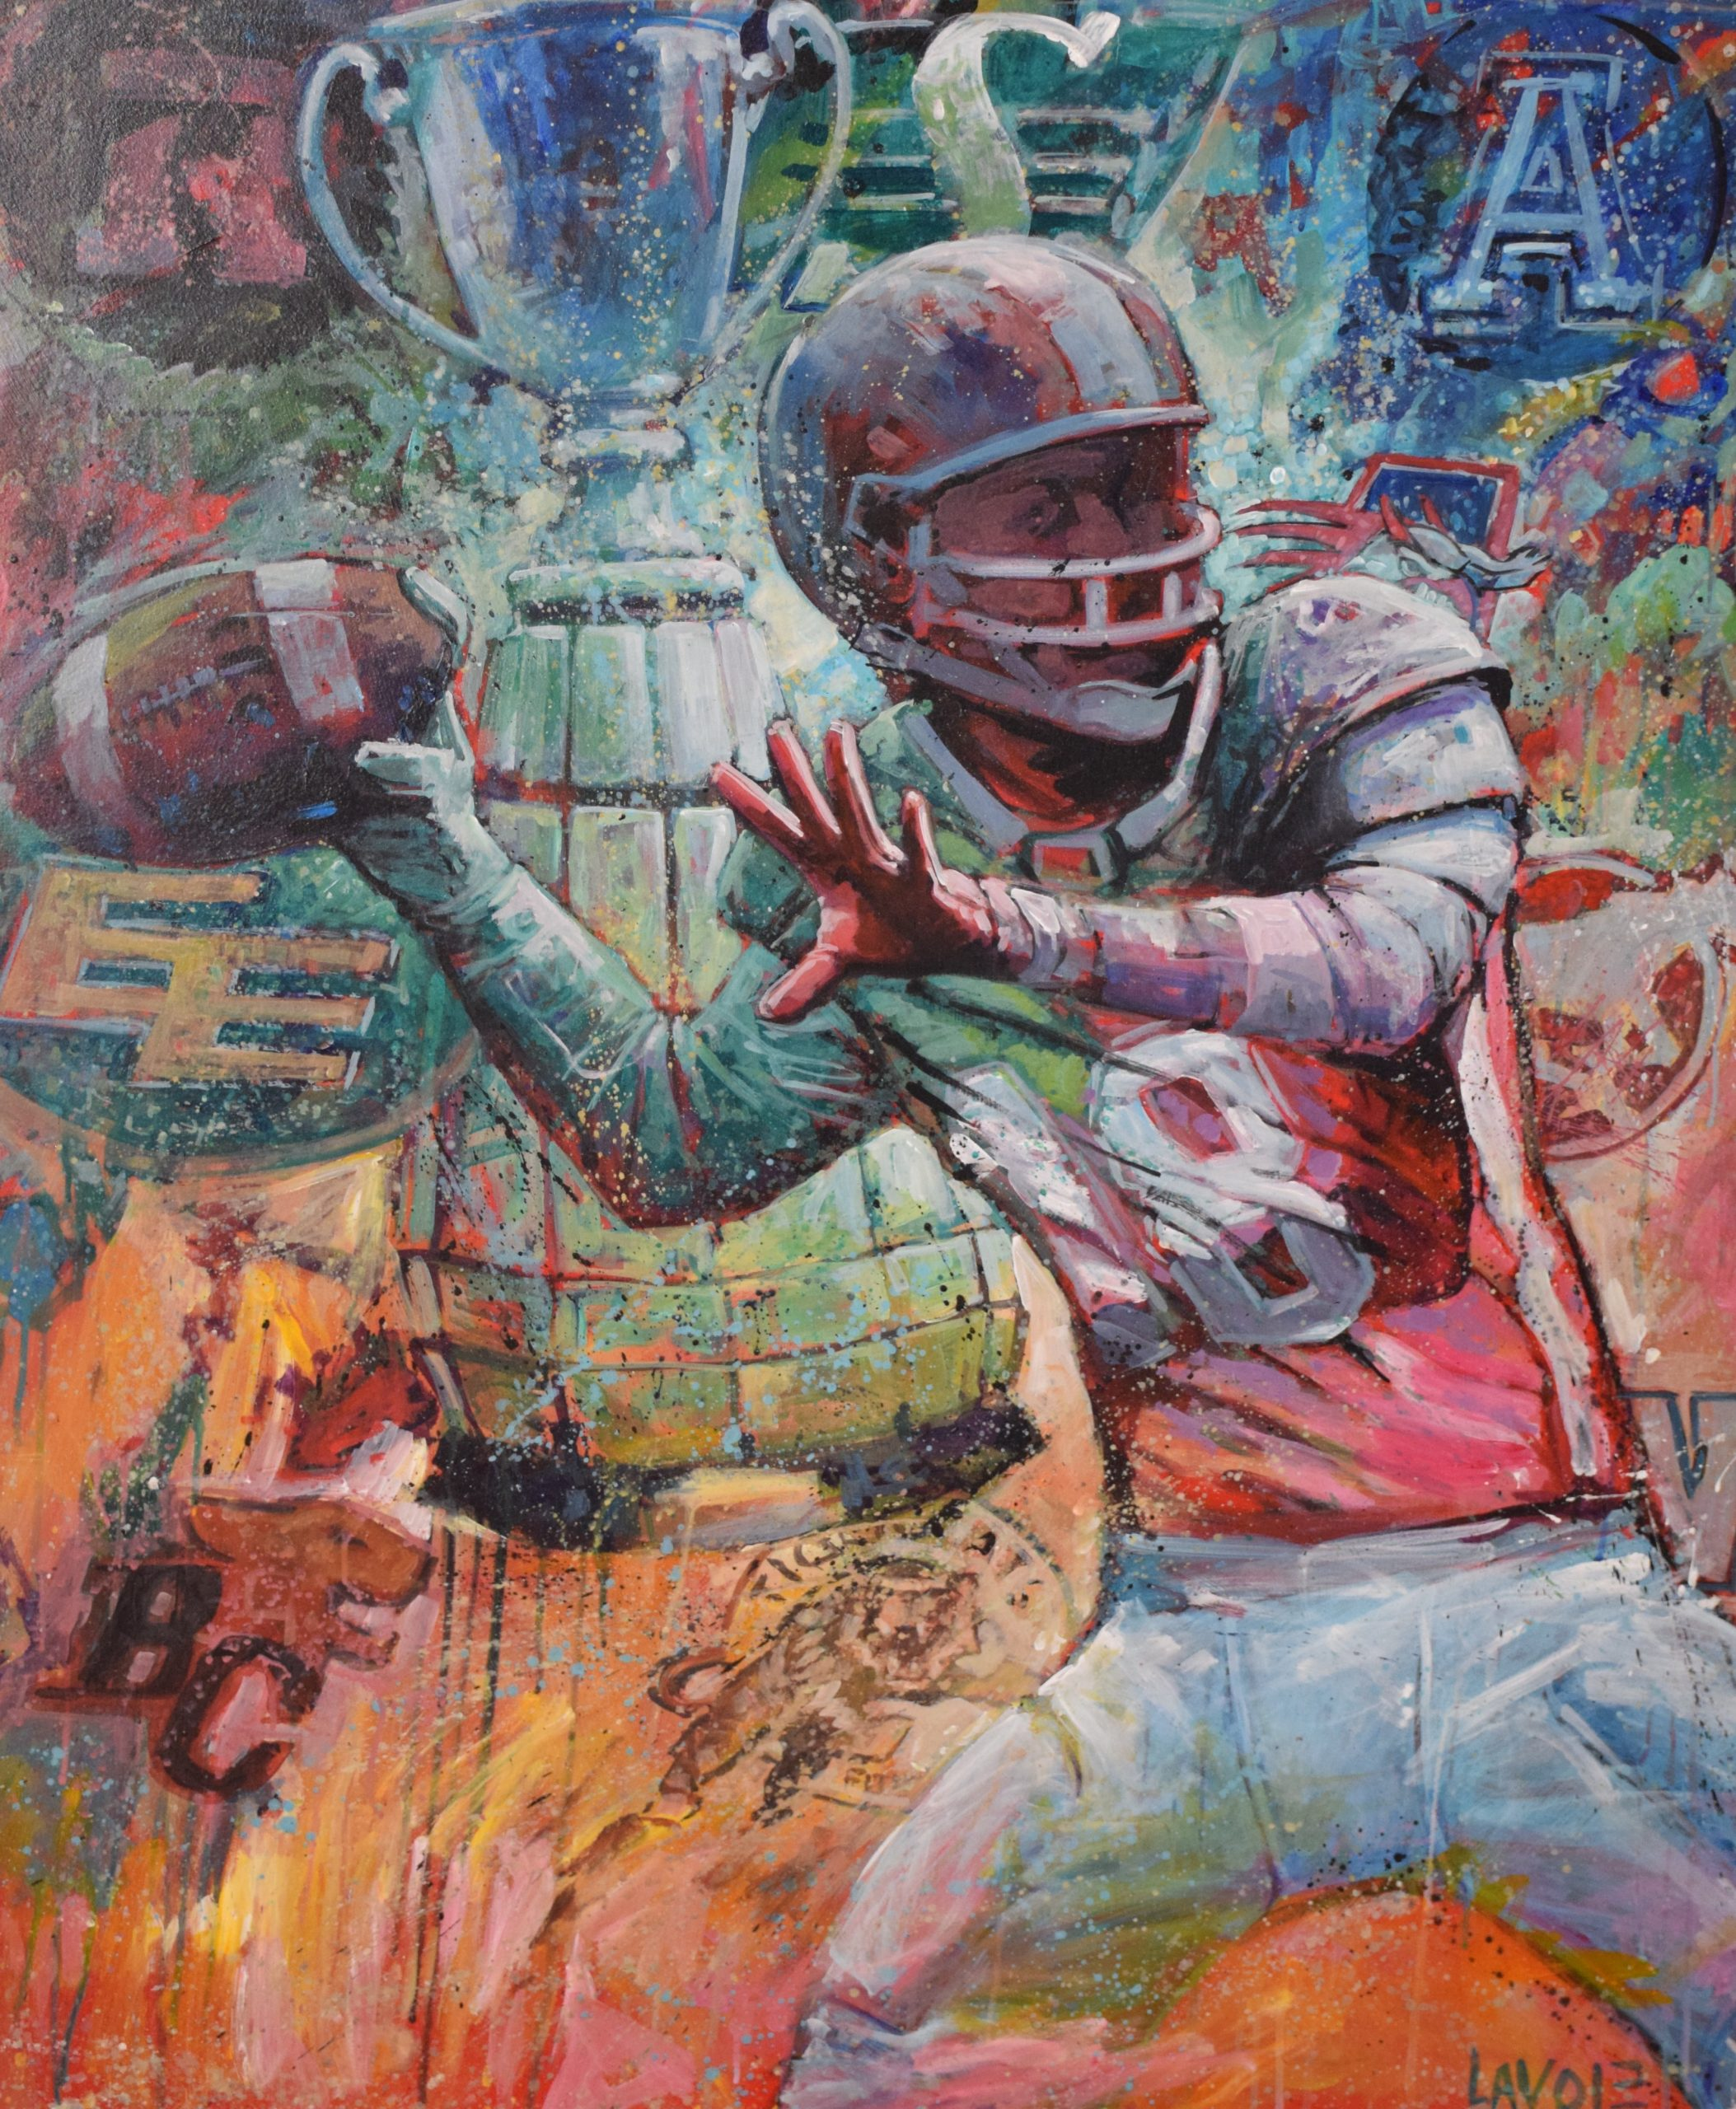 Spirit of Edmonton Grey up live art sports art